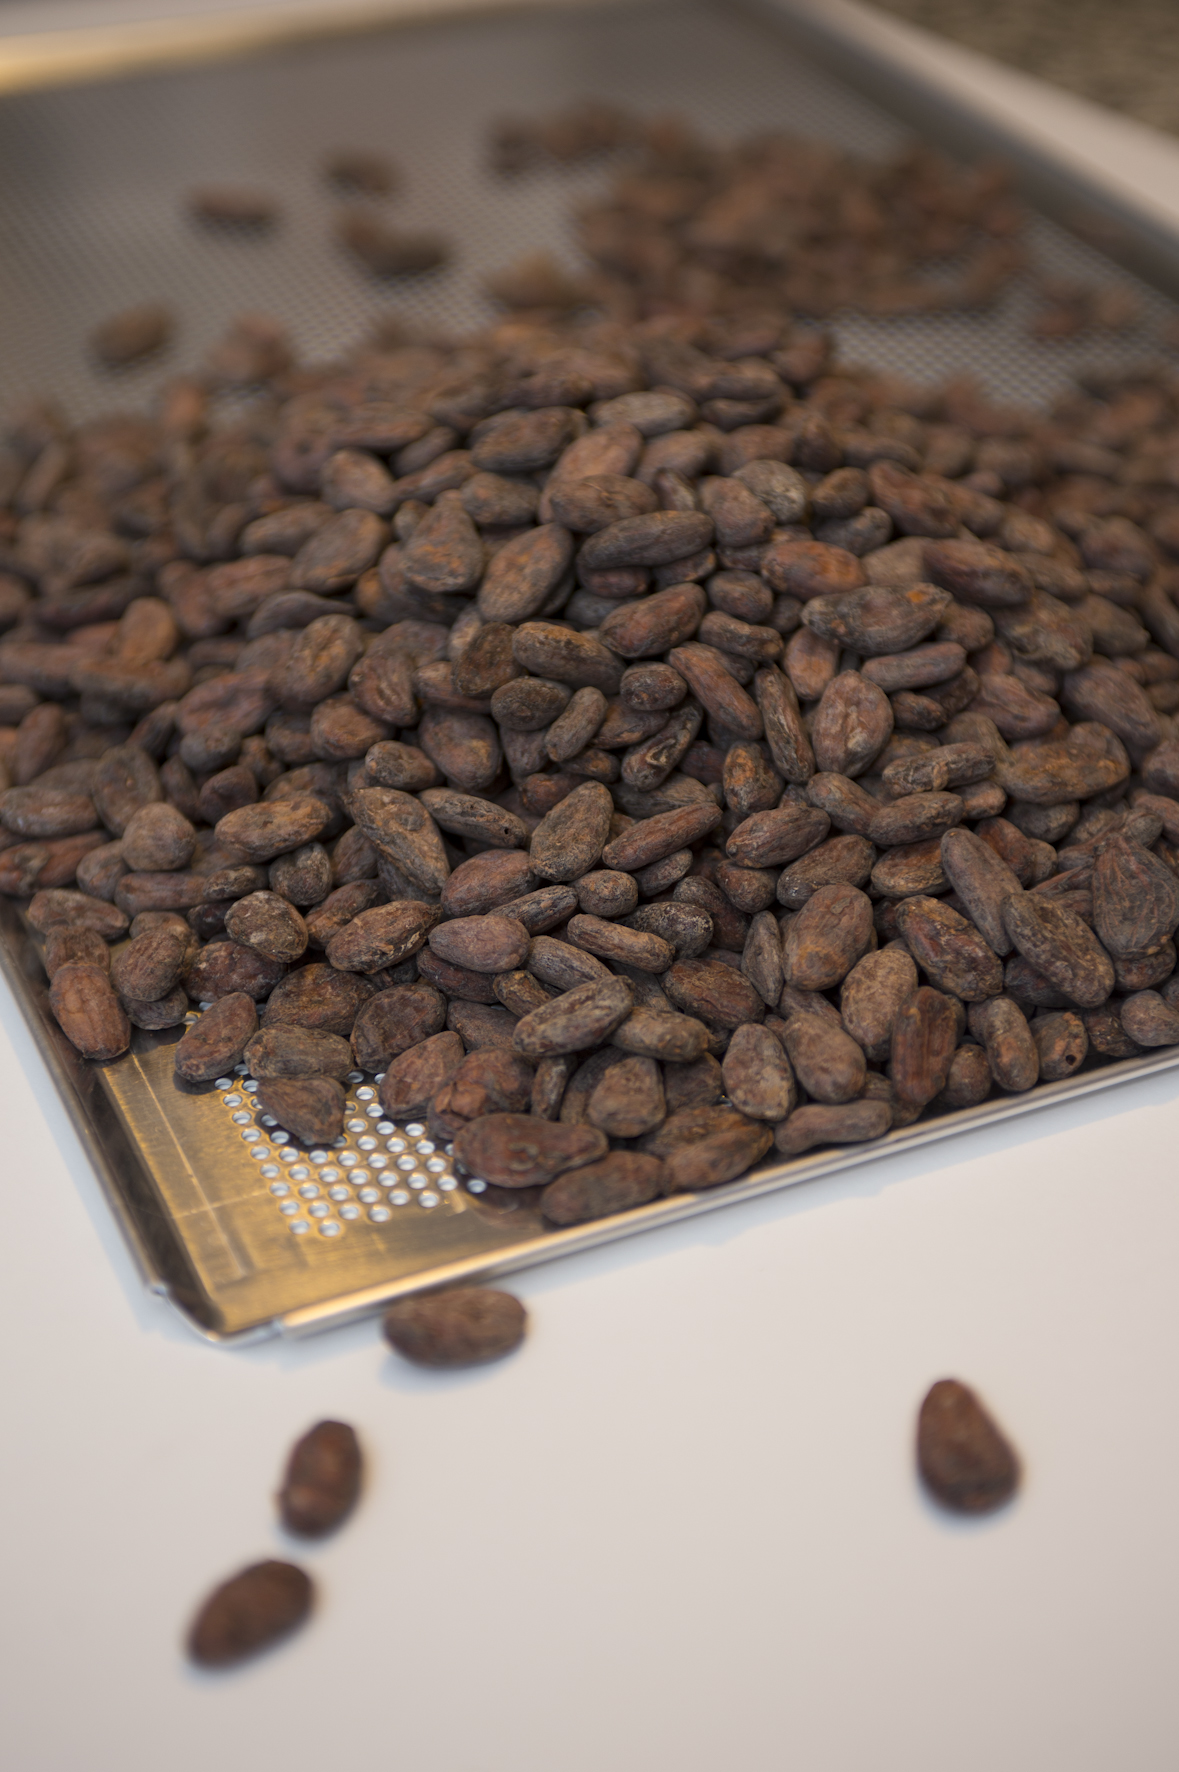 Bean to bar production - Roasting of the cocoa beans.jpg